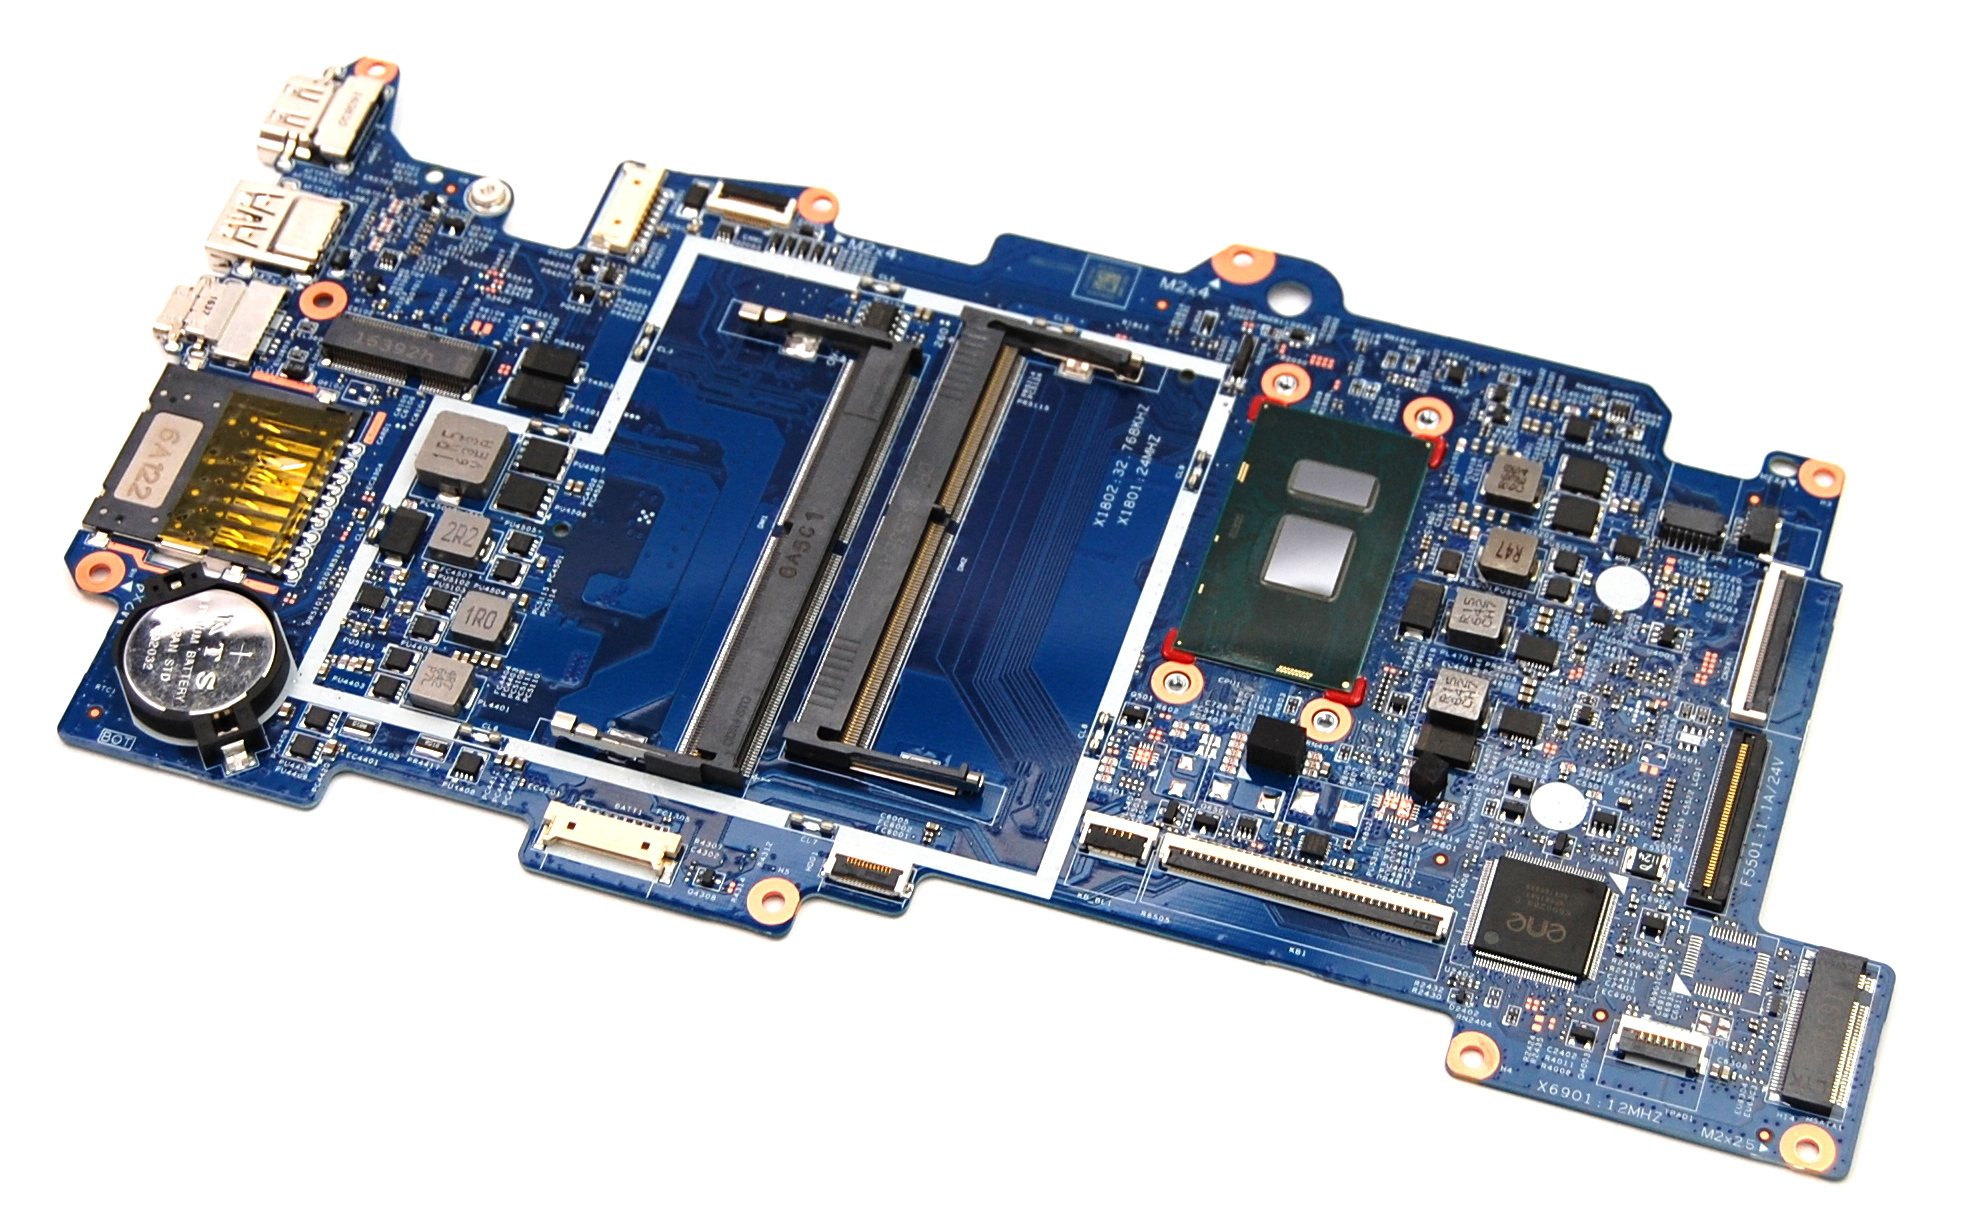 455.09301.0002 HP 868871-601 M6-AQ w/ Intel i7-7500U CPU Laptop Motherboard